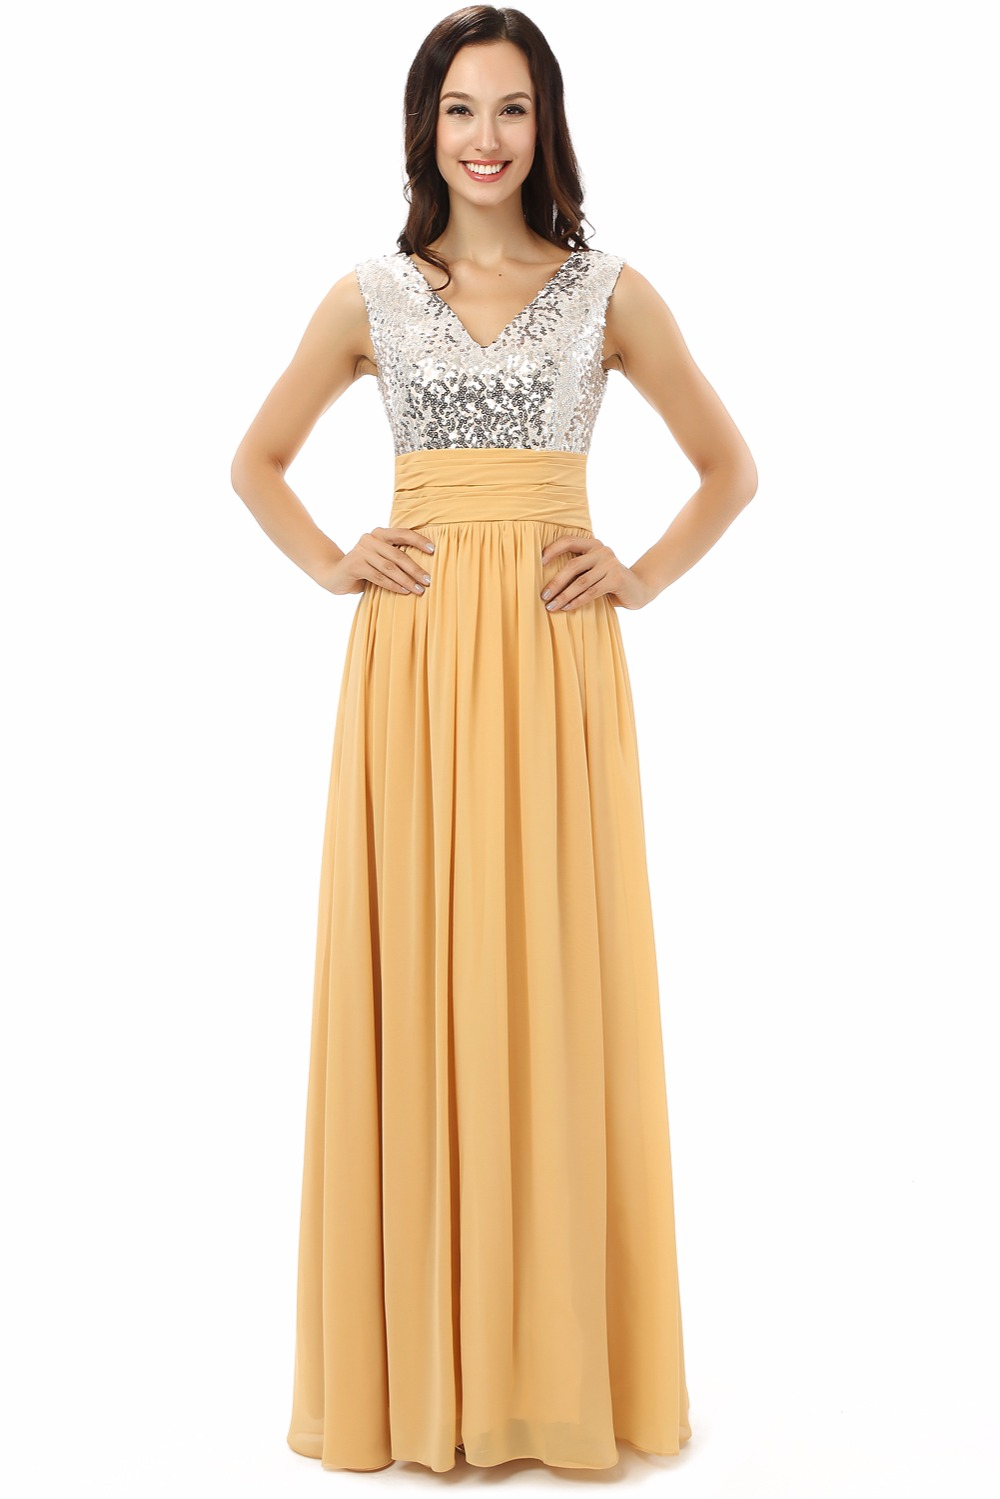 H S Bridal Silver Sequins V Neck Yellow Chiffon Women Dresses Long Bridesmaid In From Weddings Events On